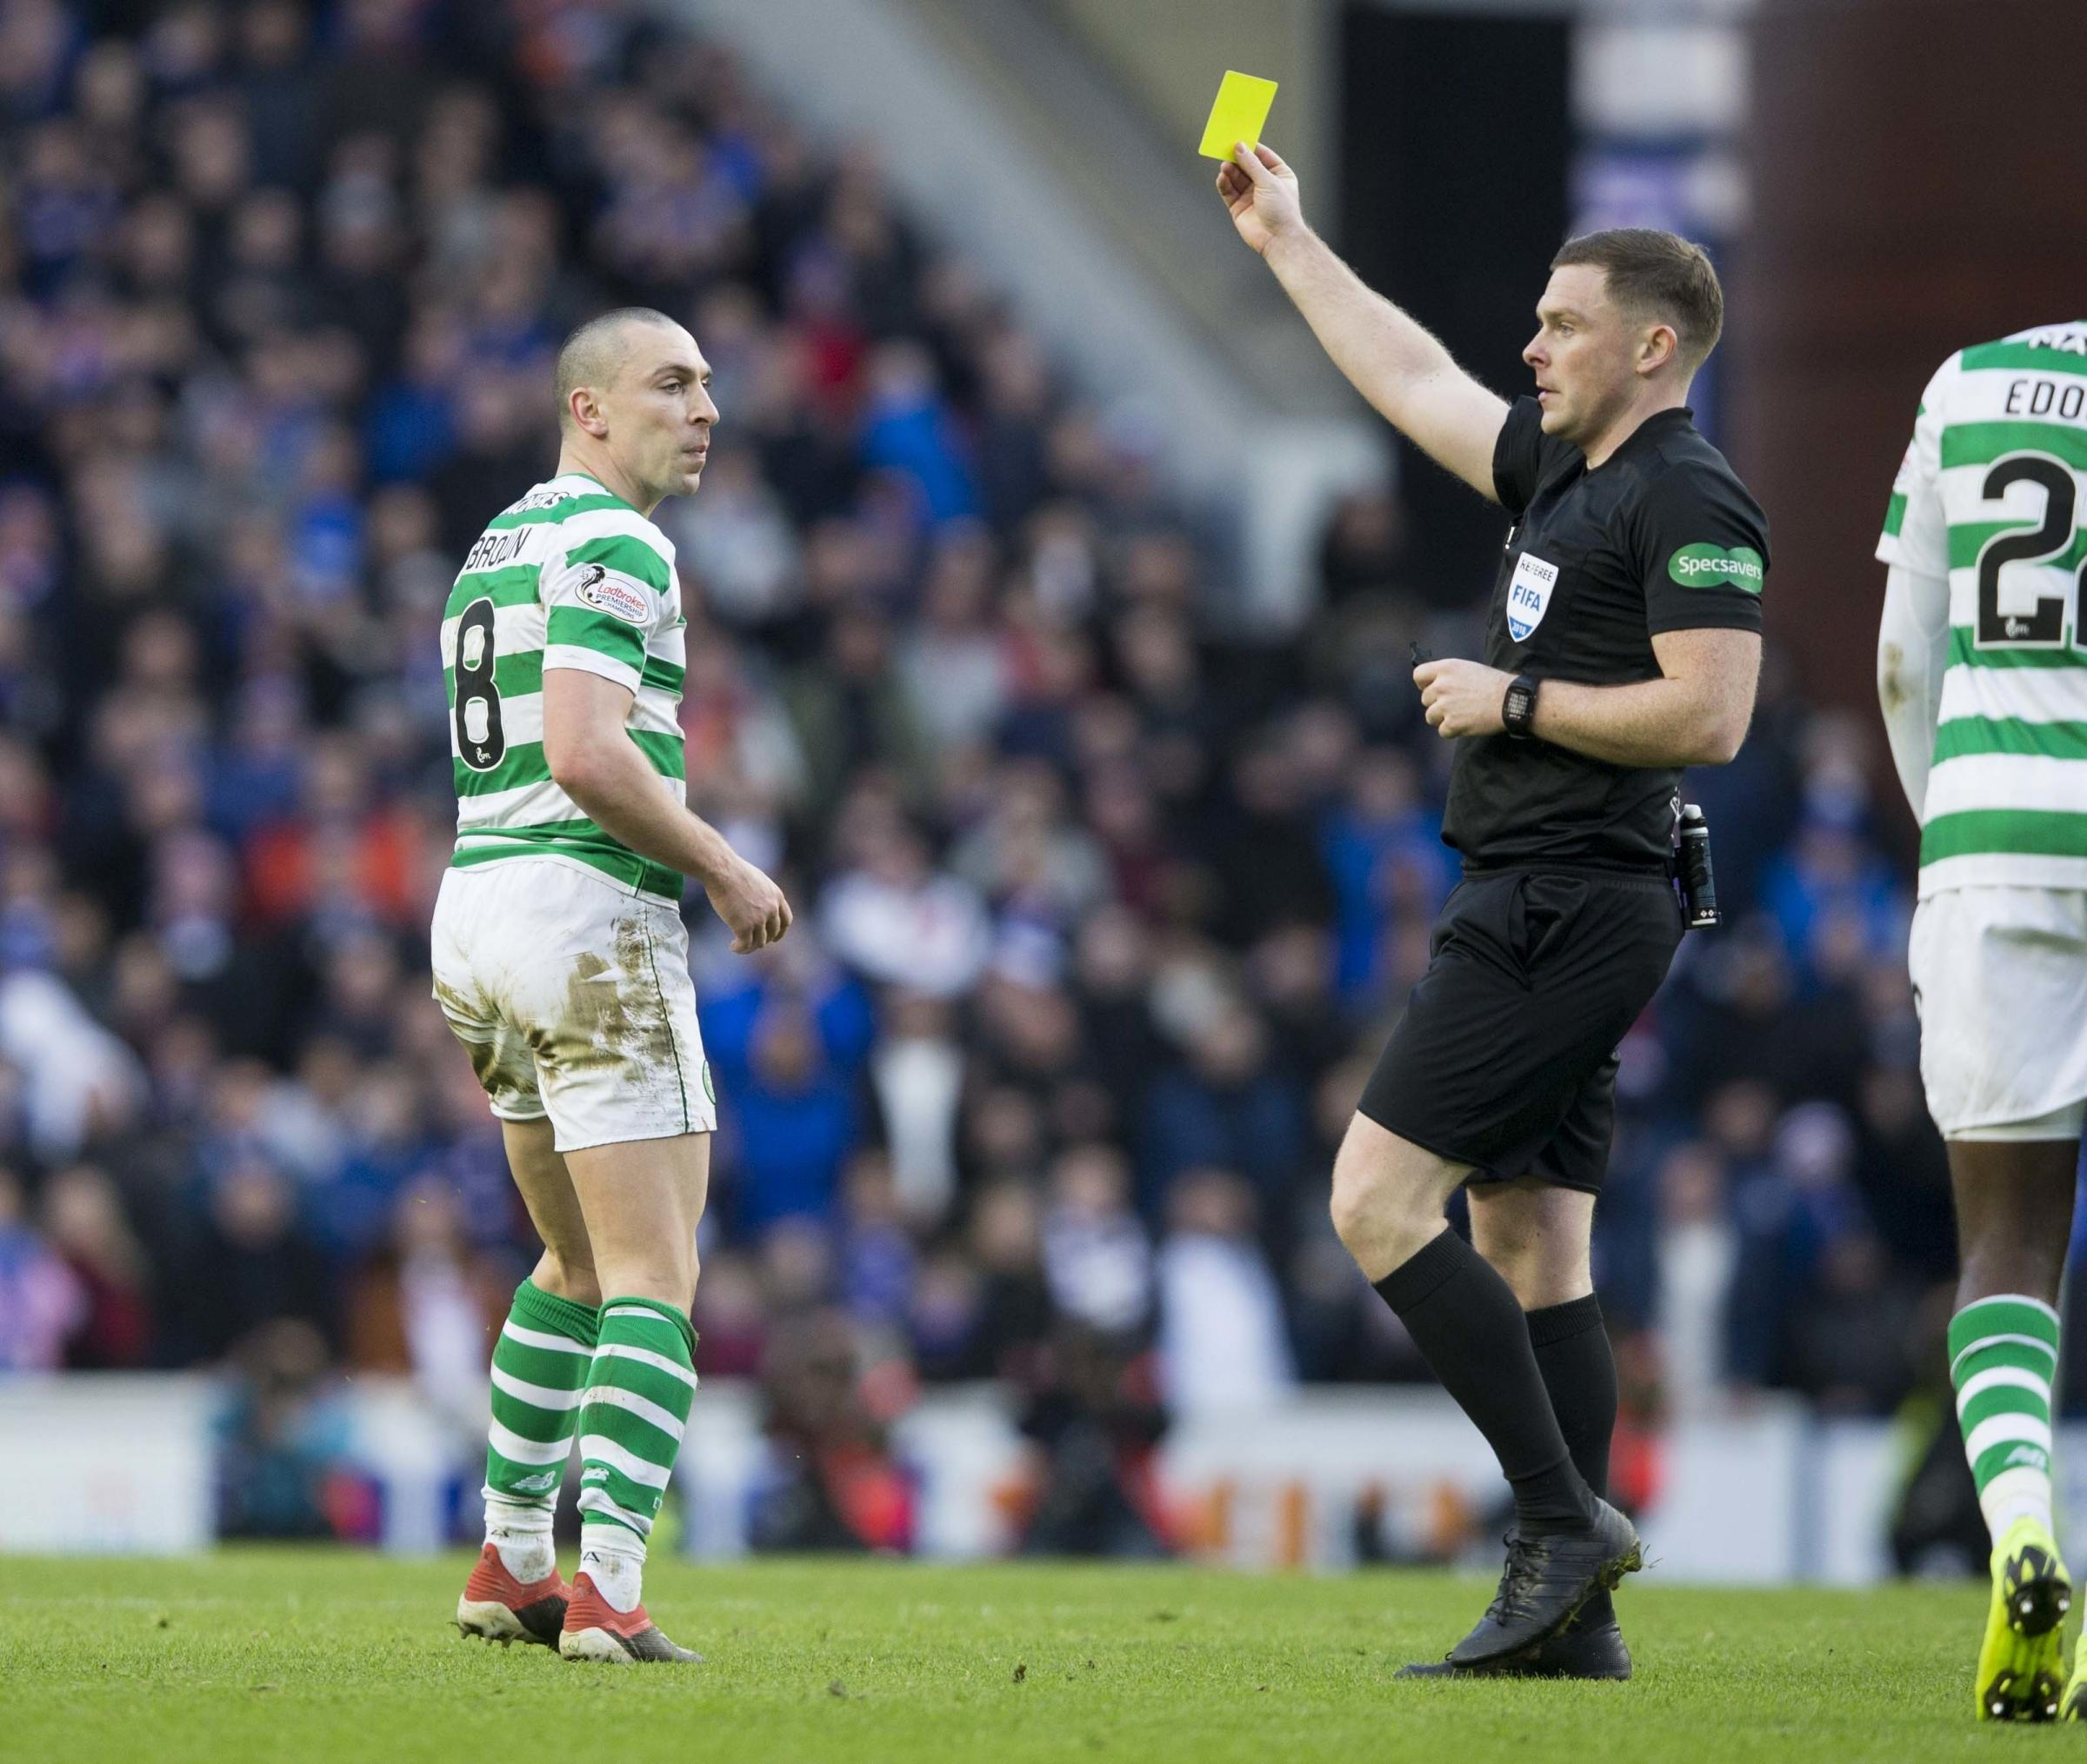 Celtic�s Scott Brown is booked during the Ladbrokes Scottish Premiership match at Ibrox Stadium, Glasgow. PRESS ASSOCIATION Photo. Picture date: Saturday December 29, 2018. See PA story SOCCER Rangers. Photo credit should read: Jeff Holmes/PA Wire